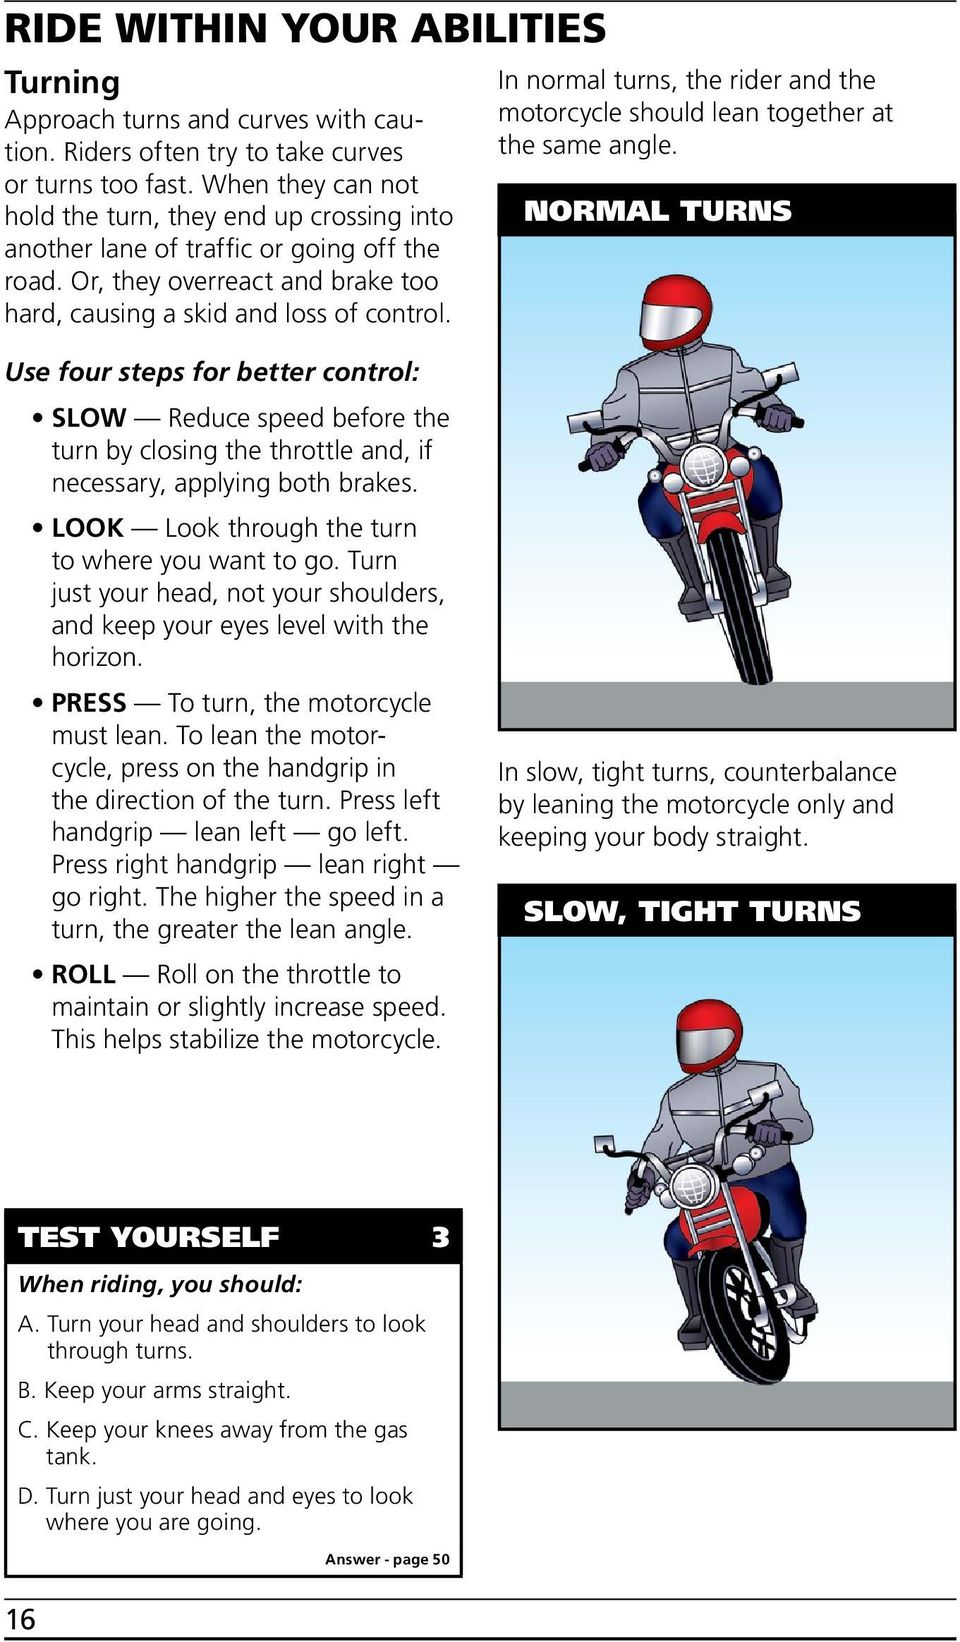 In normal turns, the rider and the motorcycle should lean together at the same angle.